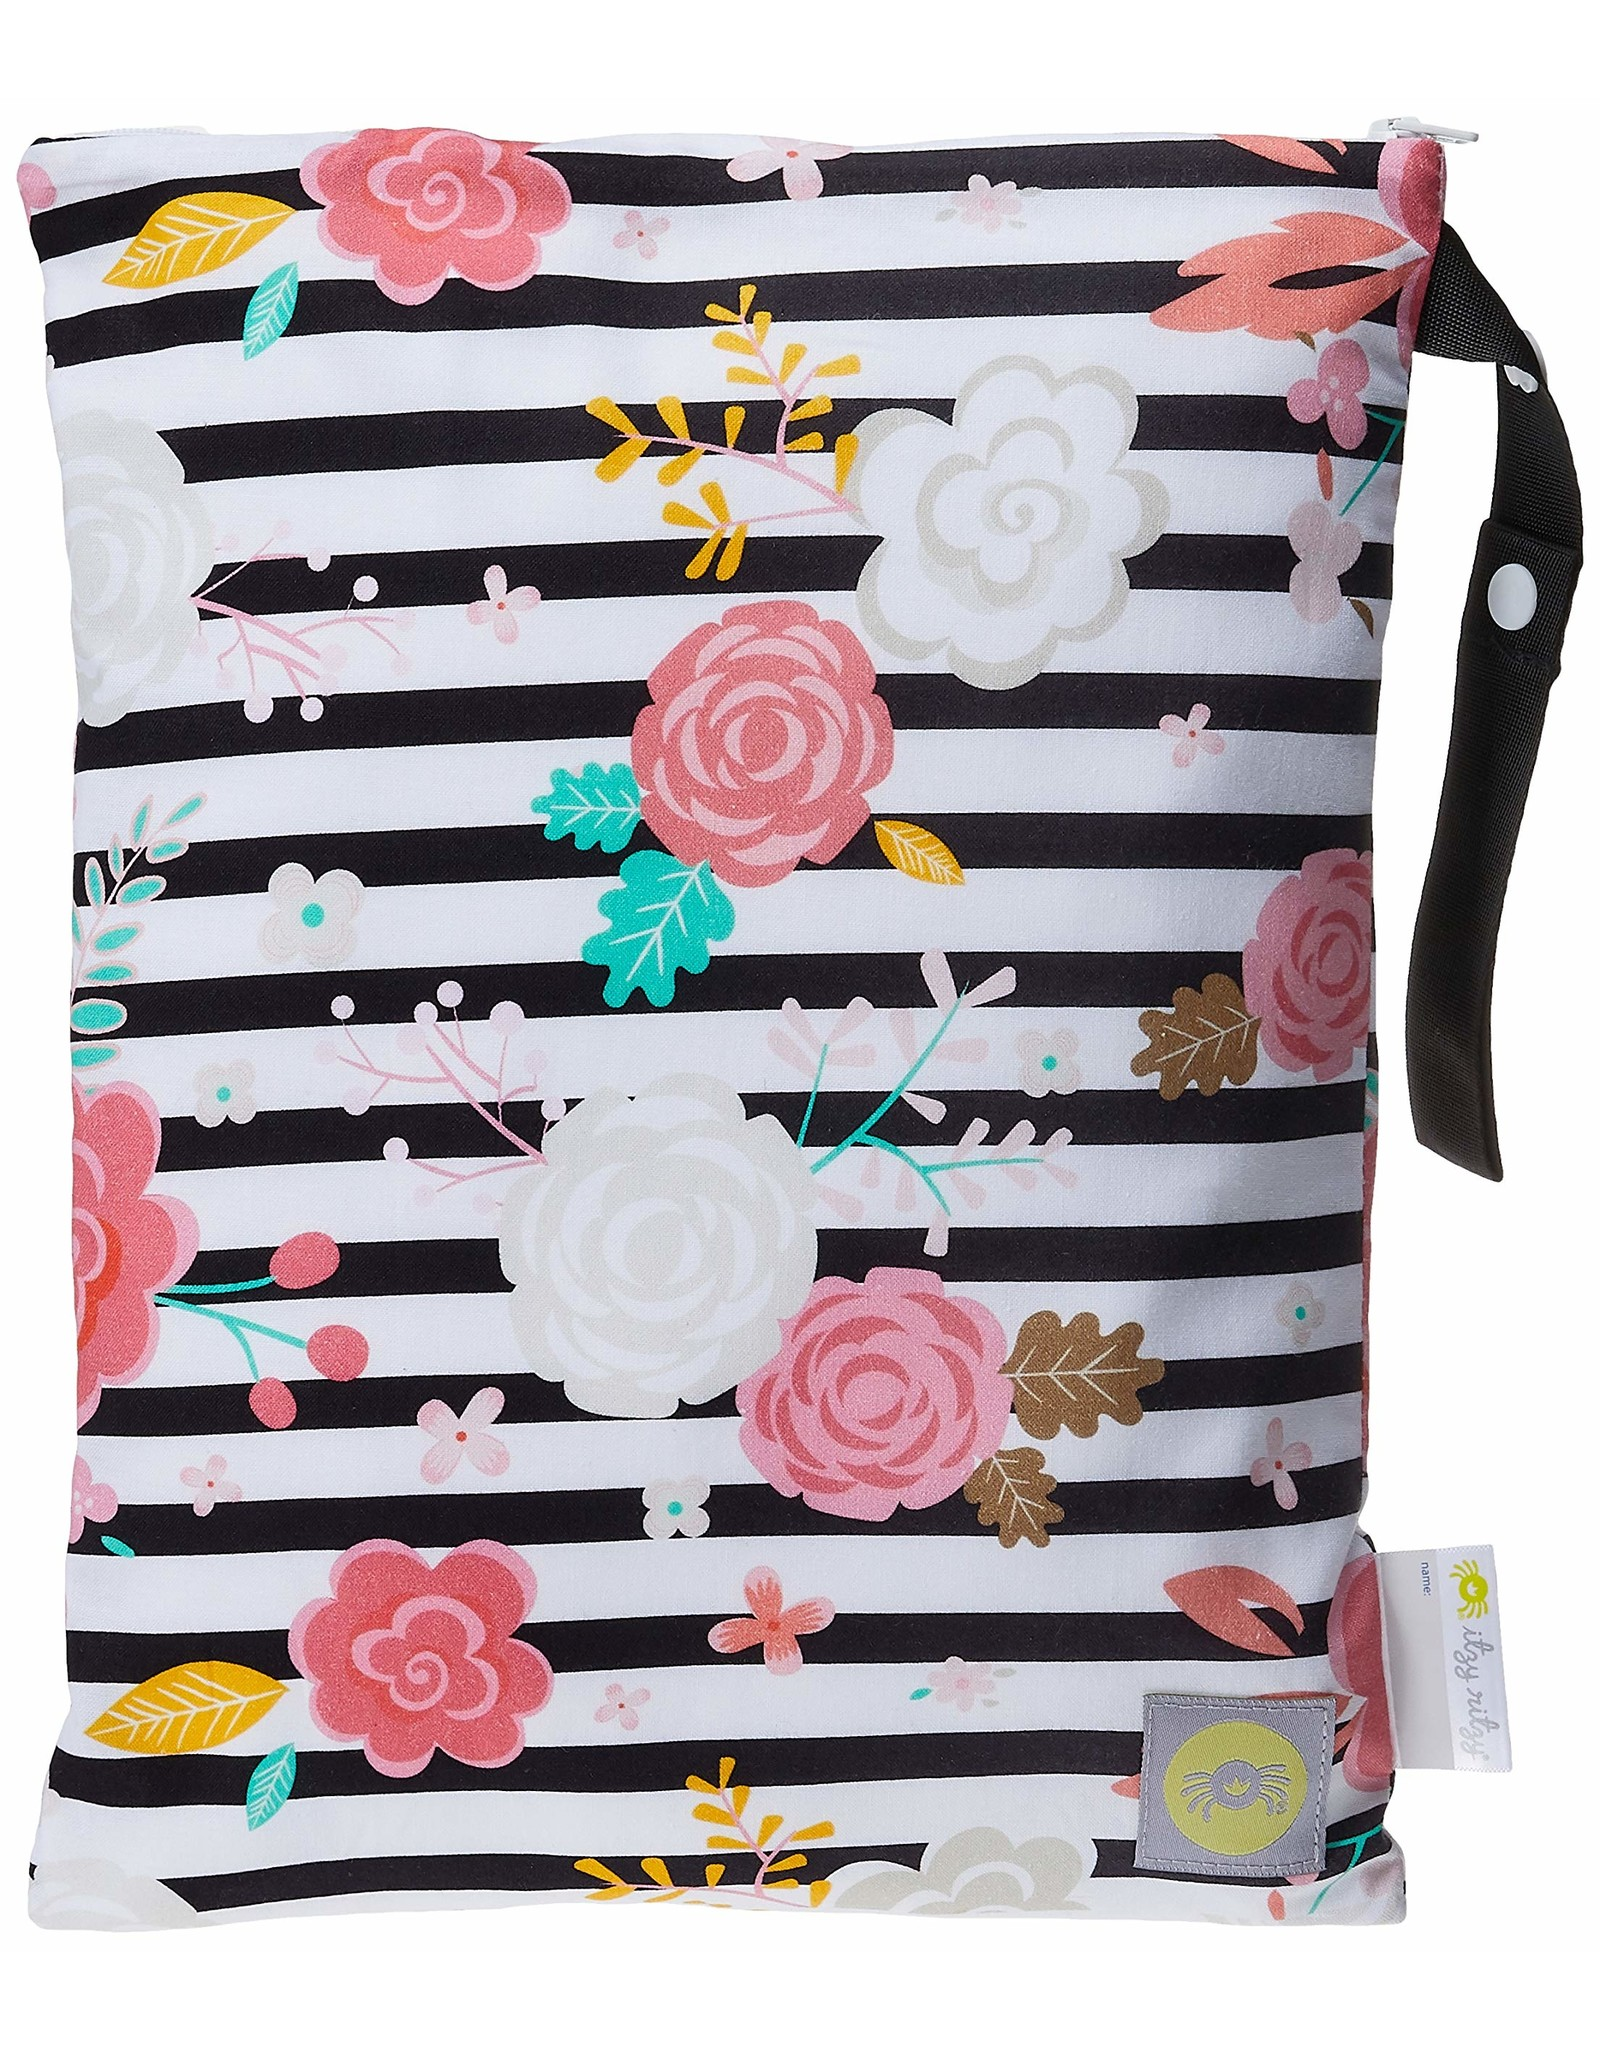 Itzy Ritzy ITZY RITZY-Large Wet Bag Tropical Floral